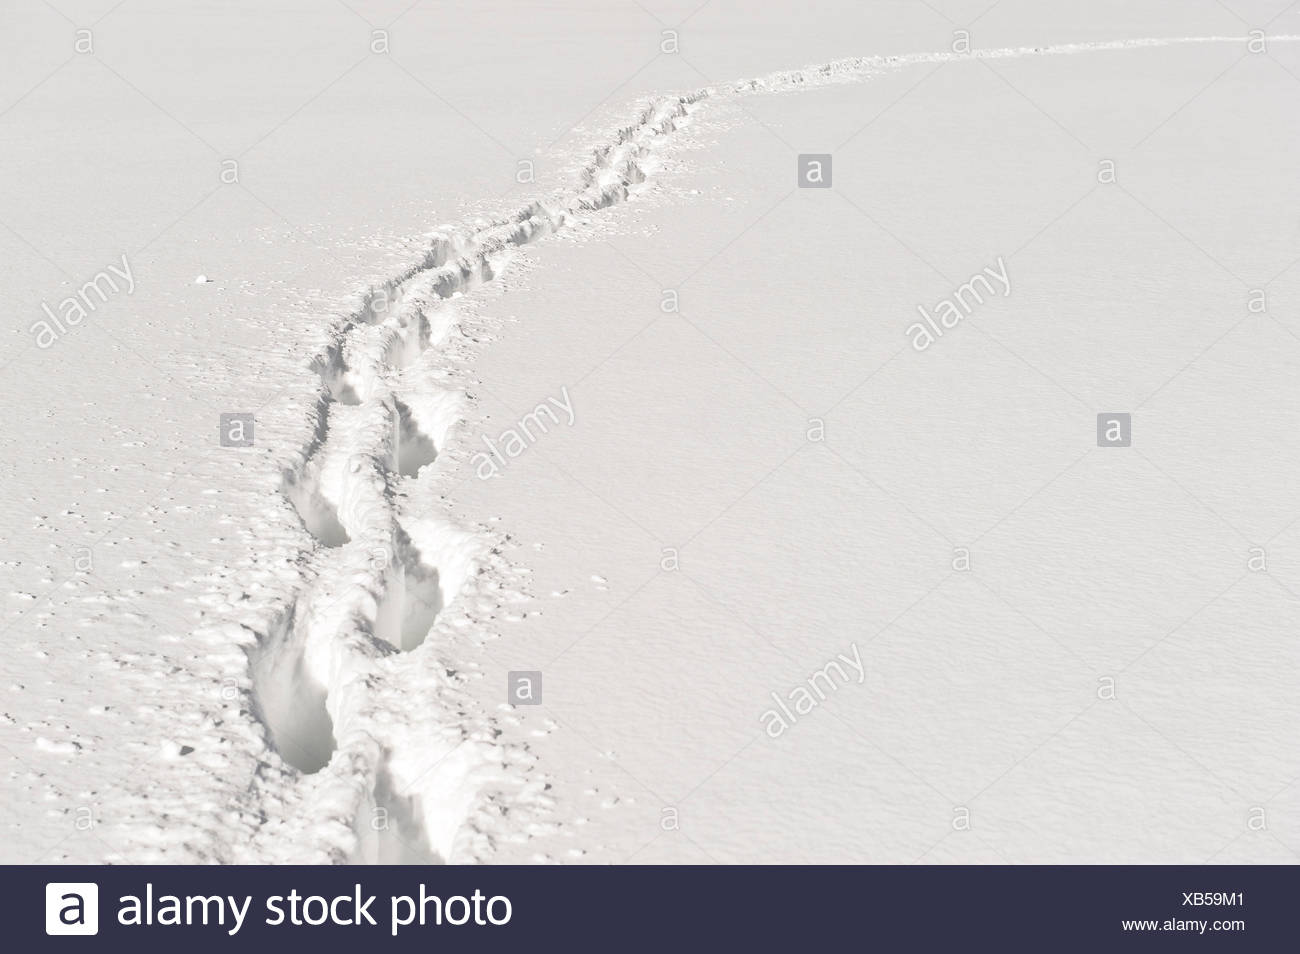 Foot path through deep snow. - Stock Image